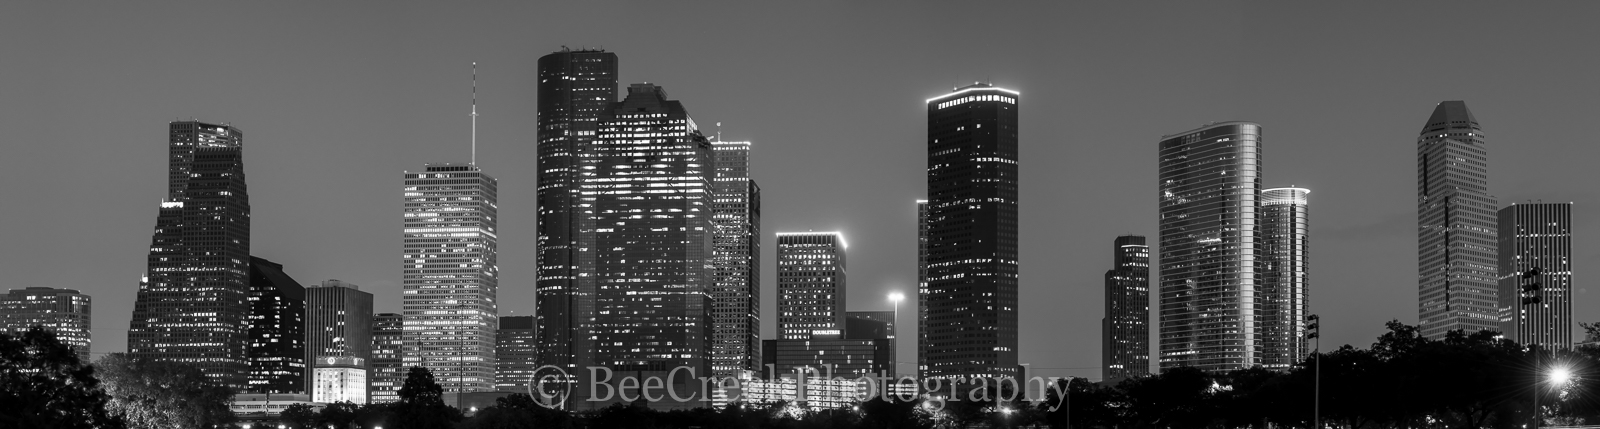 American bank, Chase Tower, Heritage Plaza, Houston Texas skyline, Houston skyline, Houston skyline images, Houston skyline photos, Houston skyline pictures, Smith St., Wells Fargo, architecture, bayo, photo